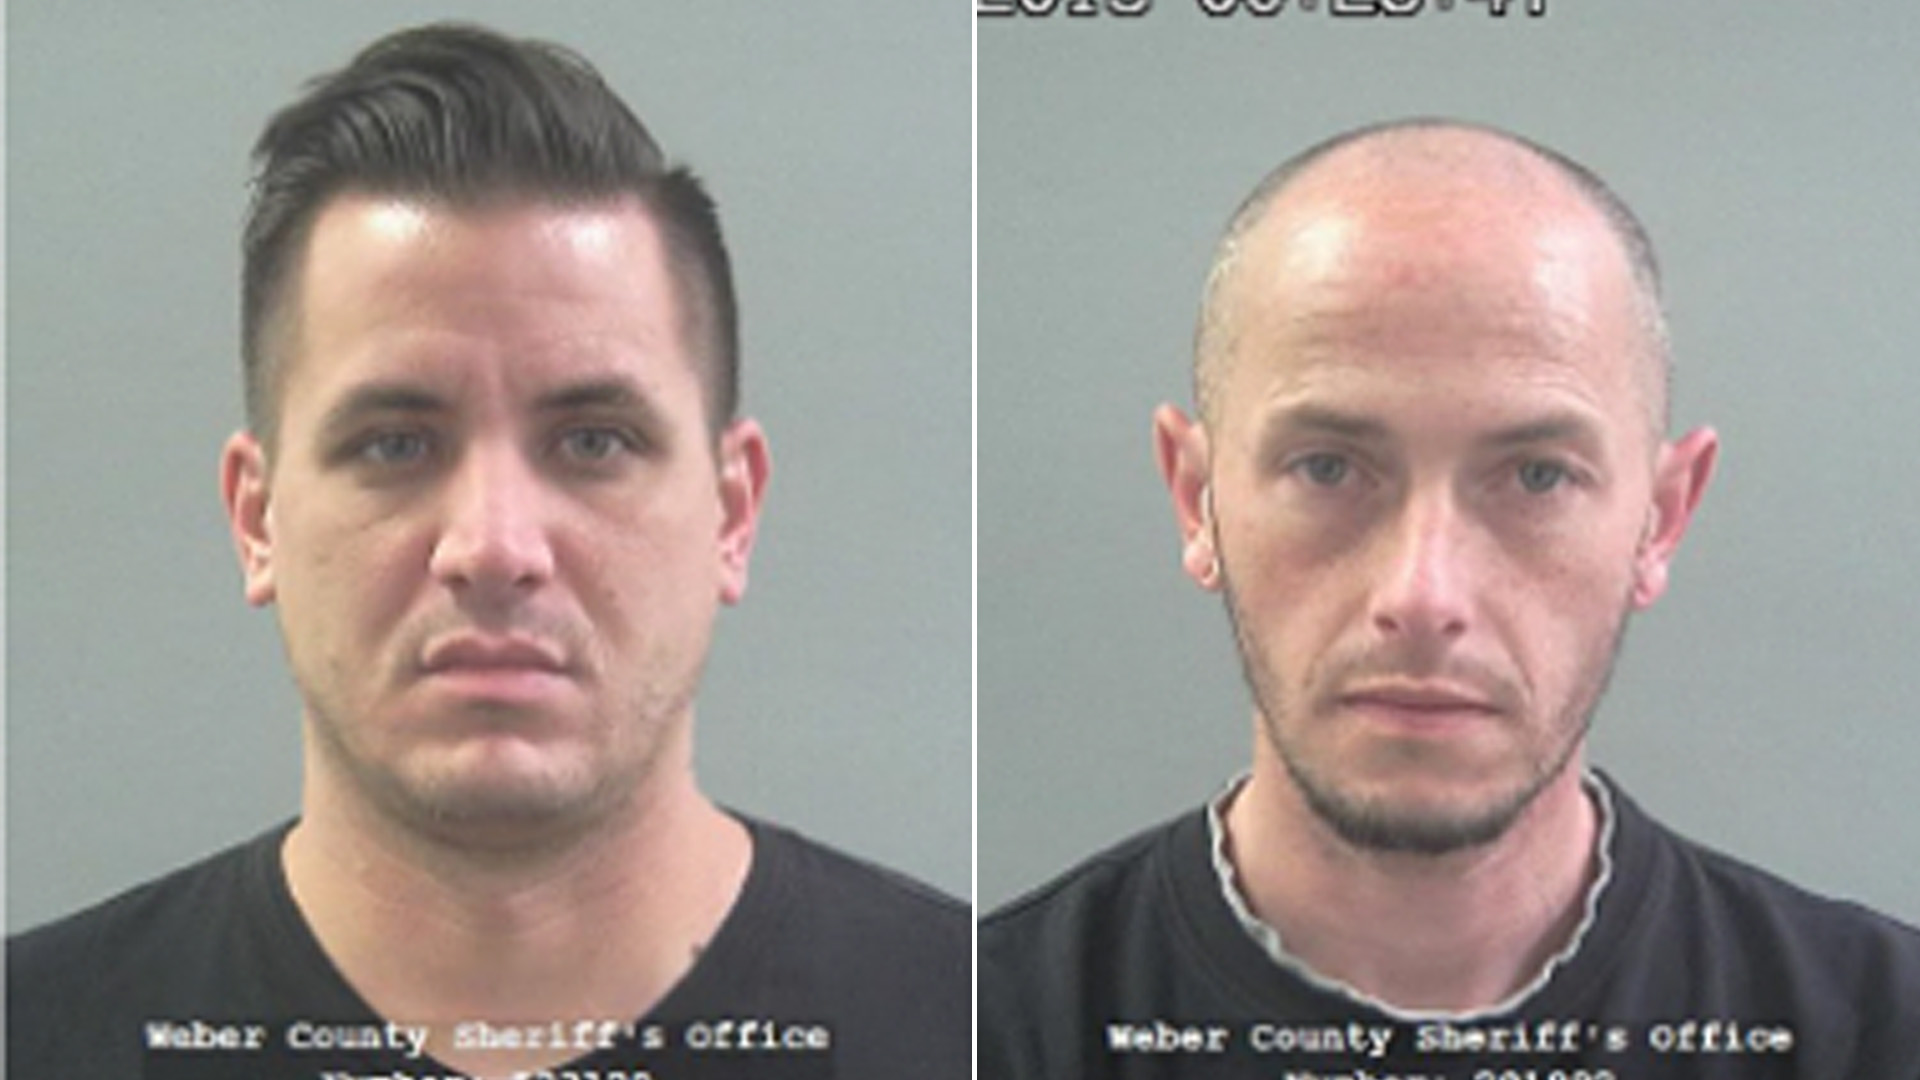 Kaleb Wiewandt, left, and Matthew Belnap are seen in booking photos released Feb. 25, 2020, by the Weber County Sheriff's Office.